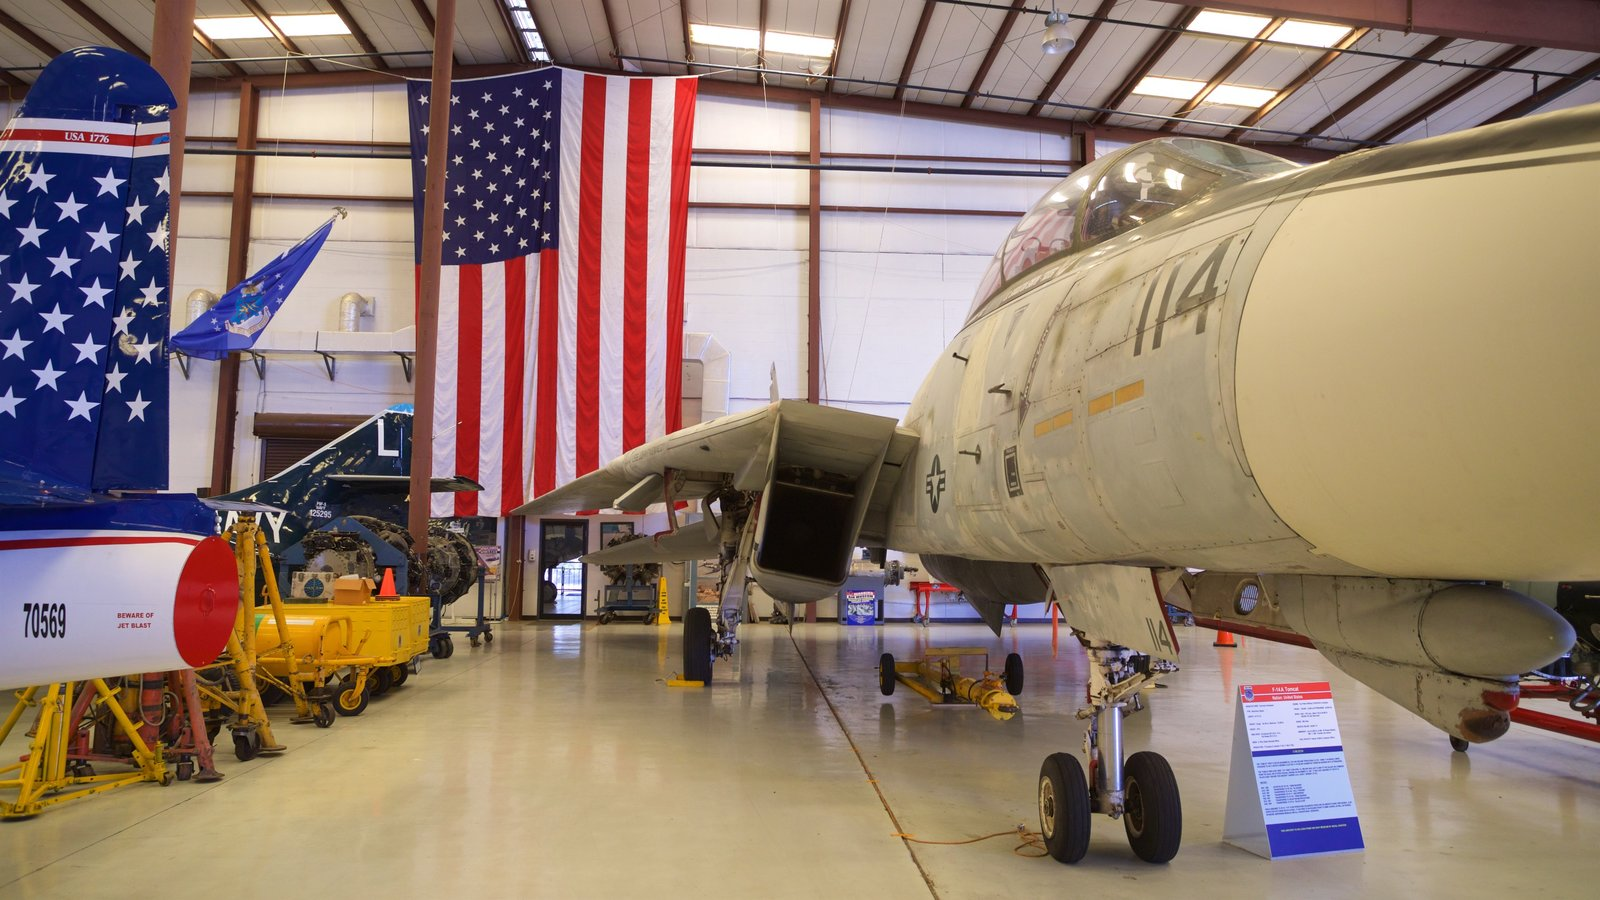 Valiant Air Command Warbird Museum showing military items and interior views